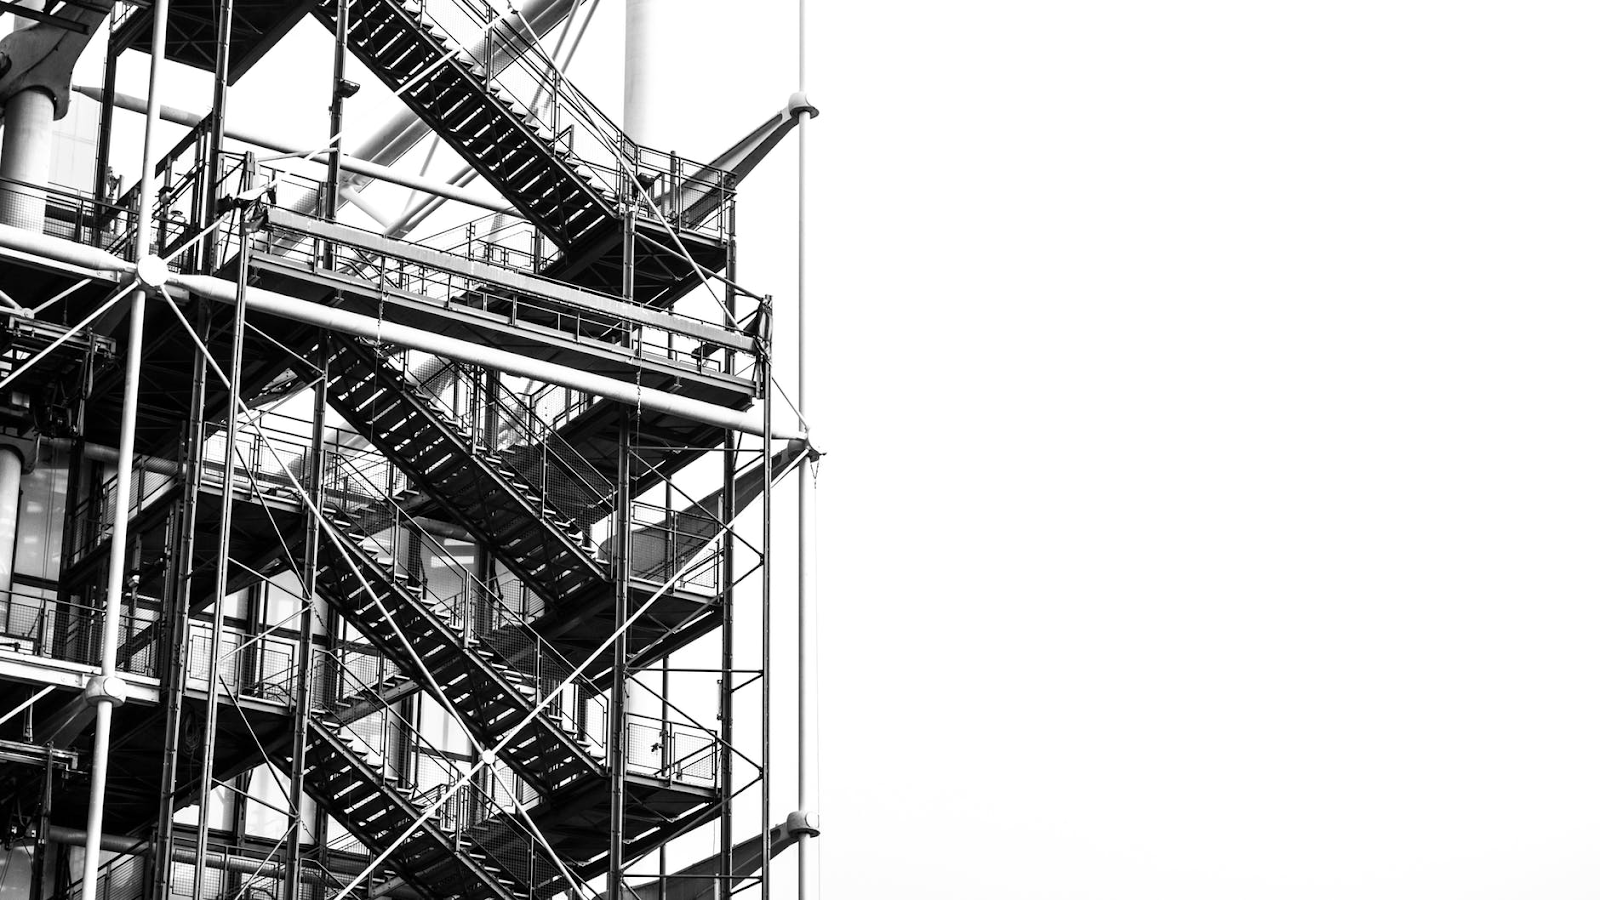 construction scaffolding is one of the construction sites and their challenges